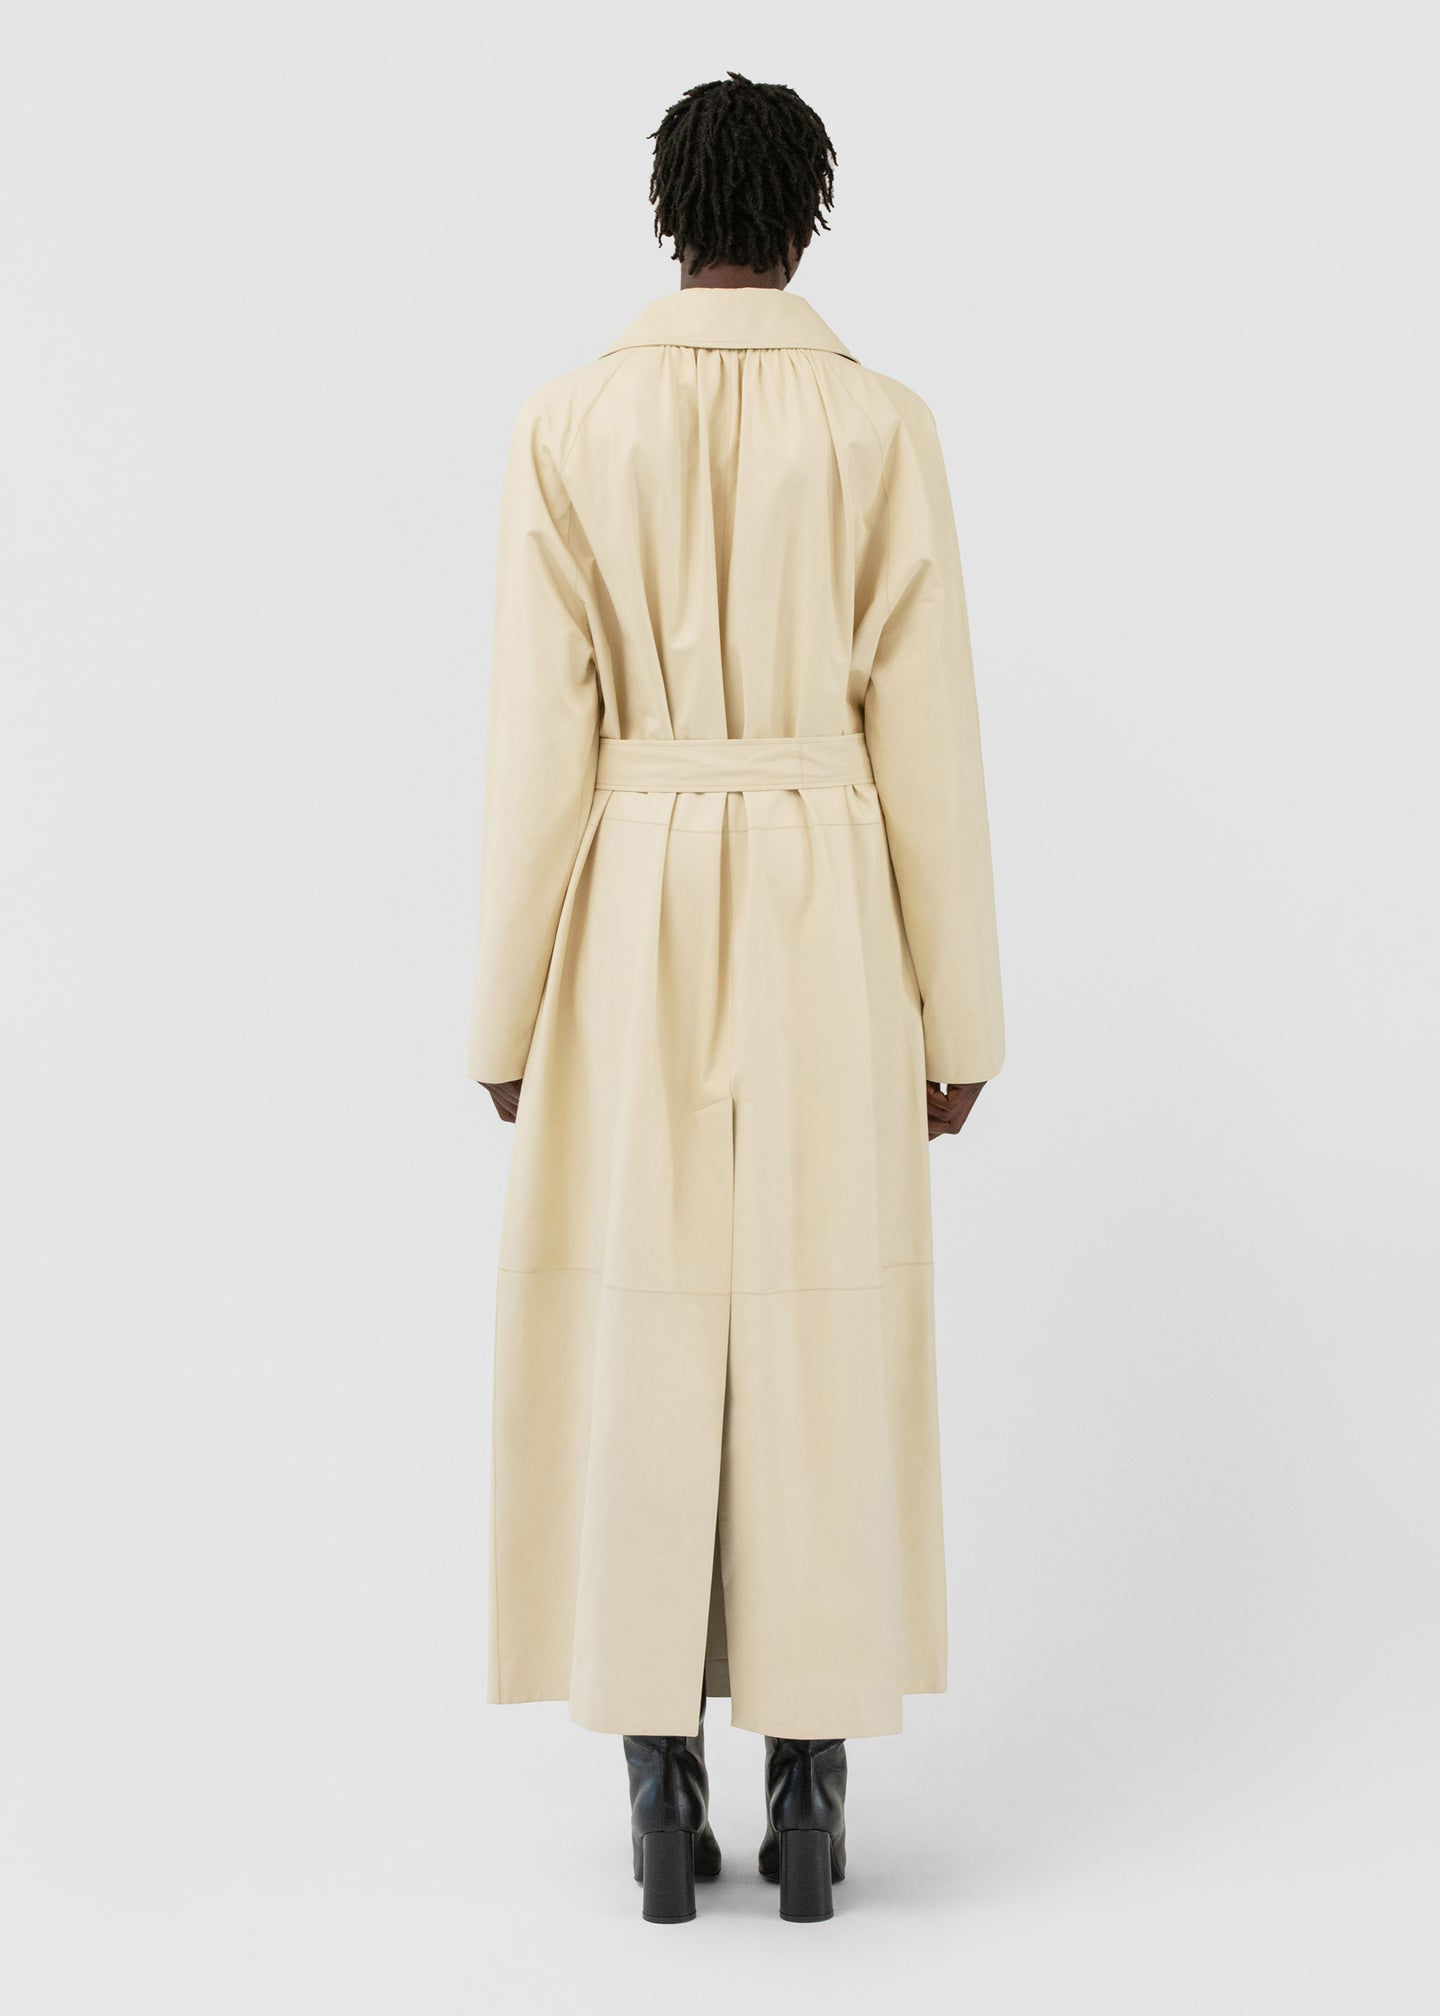 CO - Belted Trench Coat in Leather - Cream